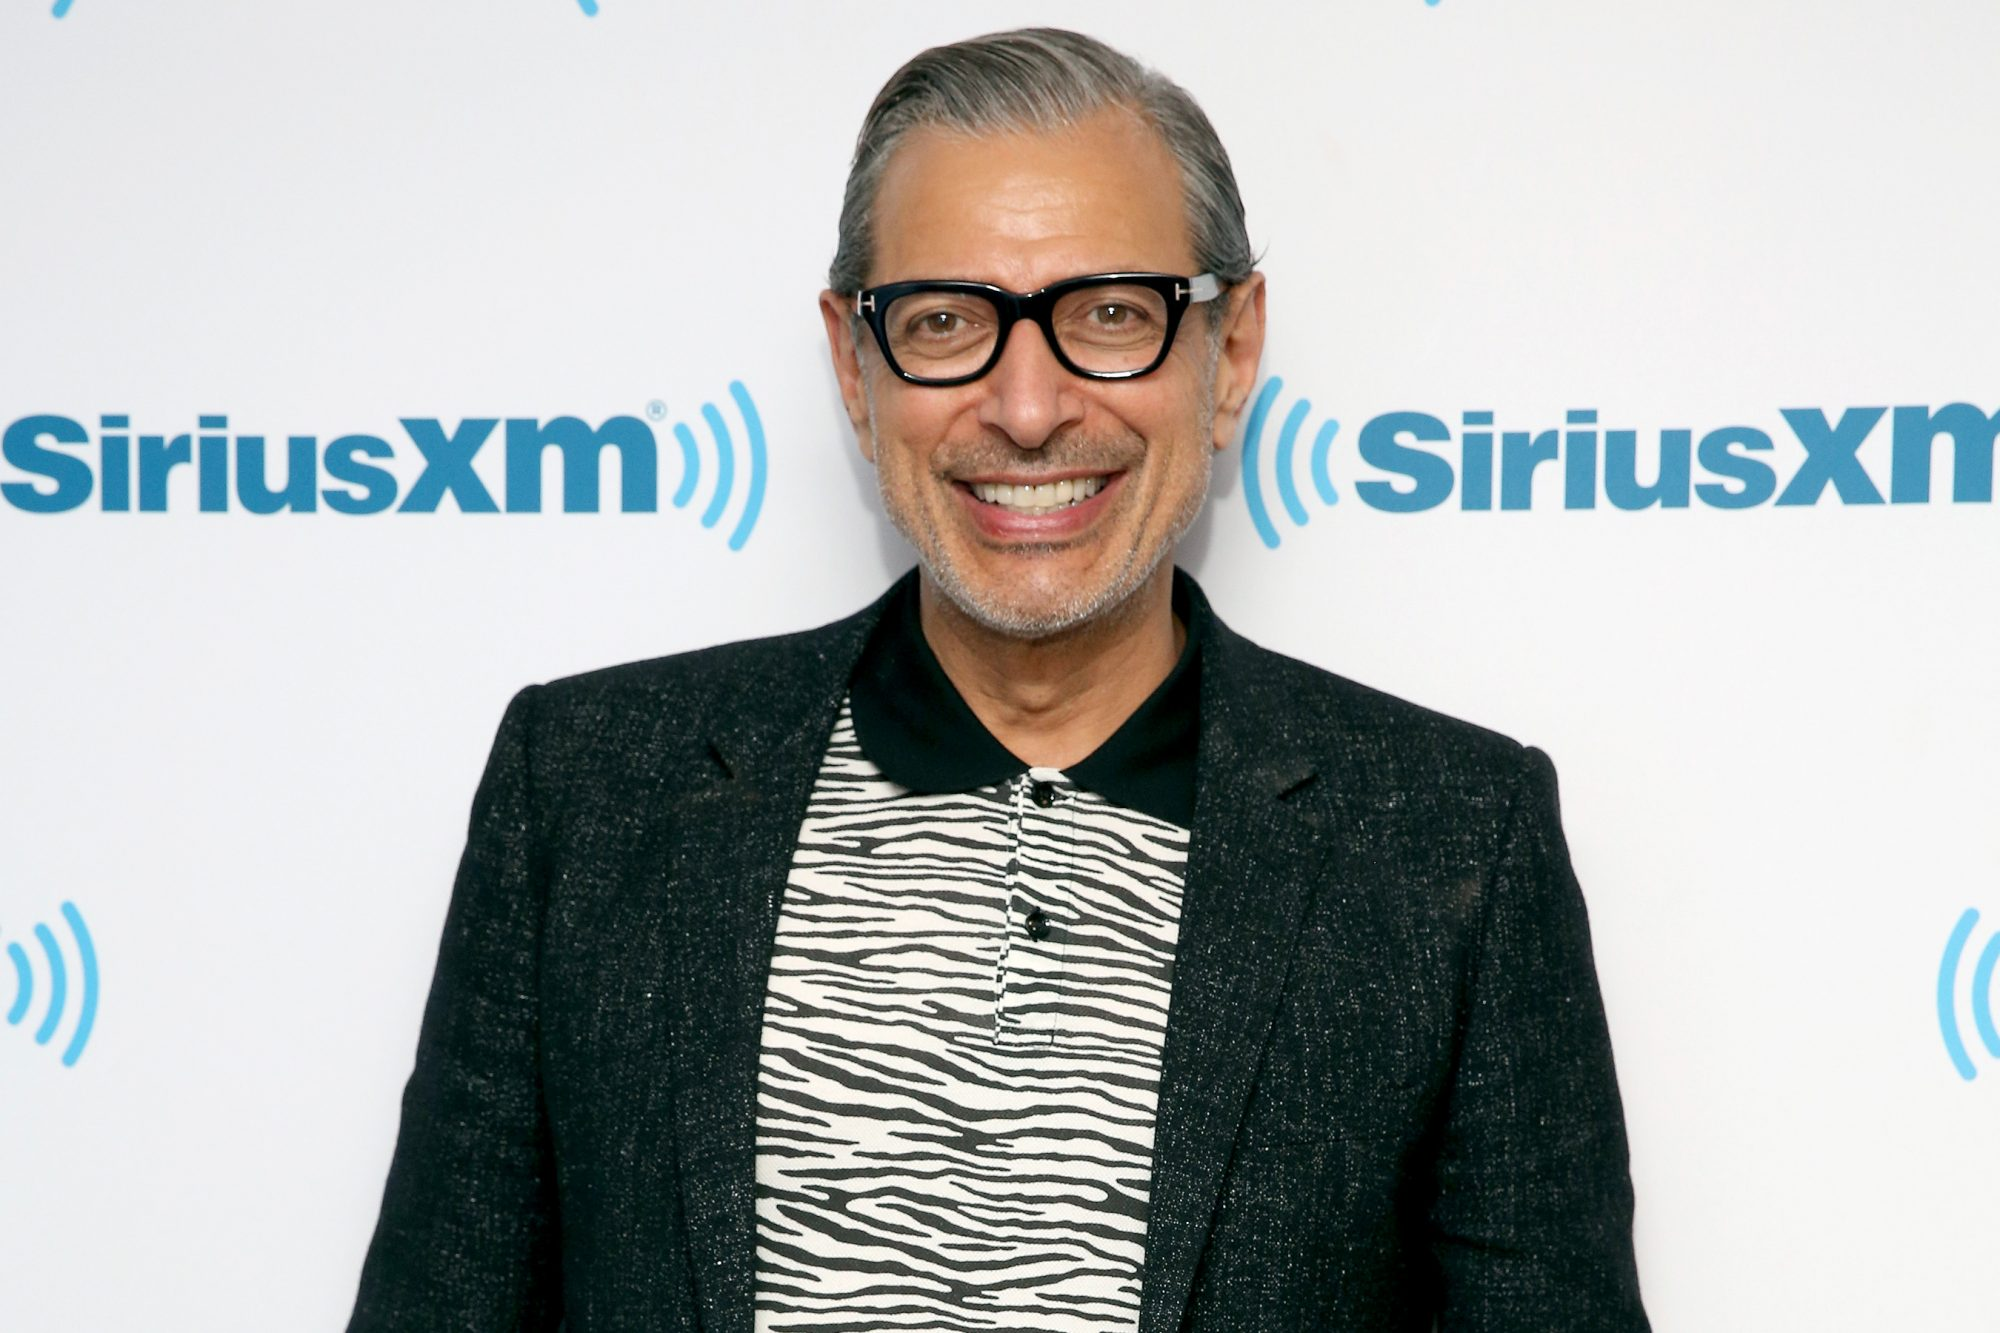 Jeff Goldblum's new gig involves sausages